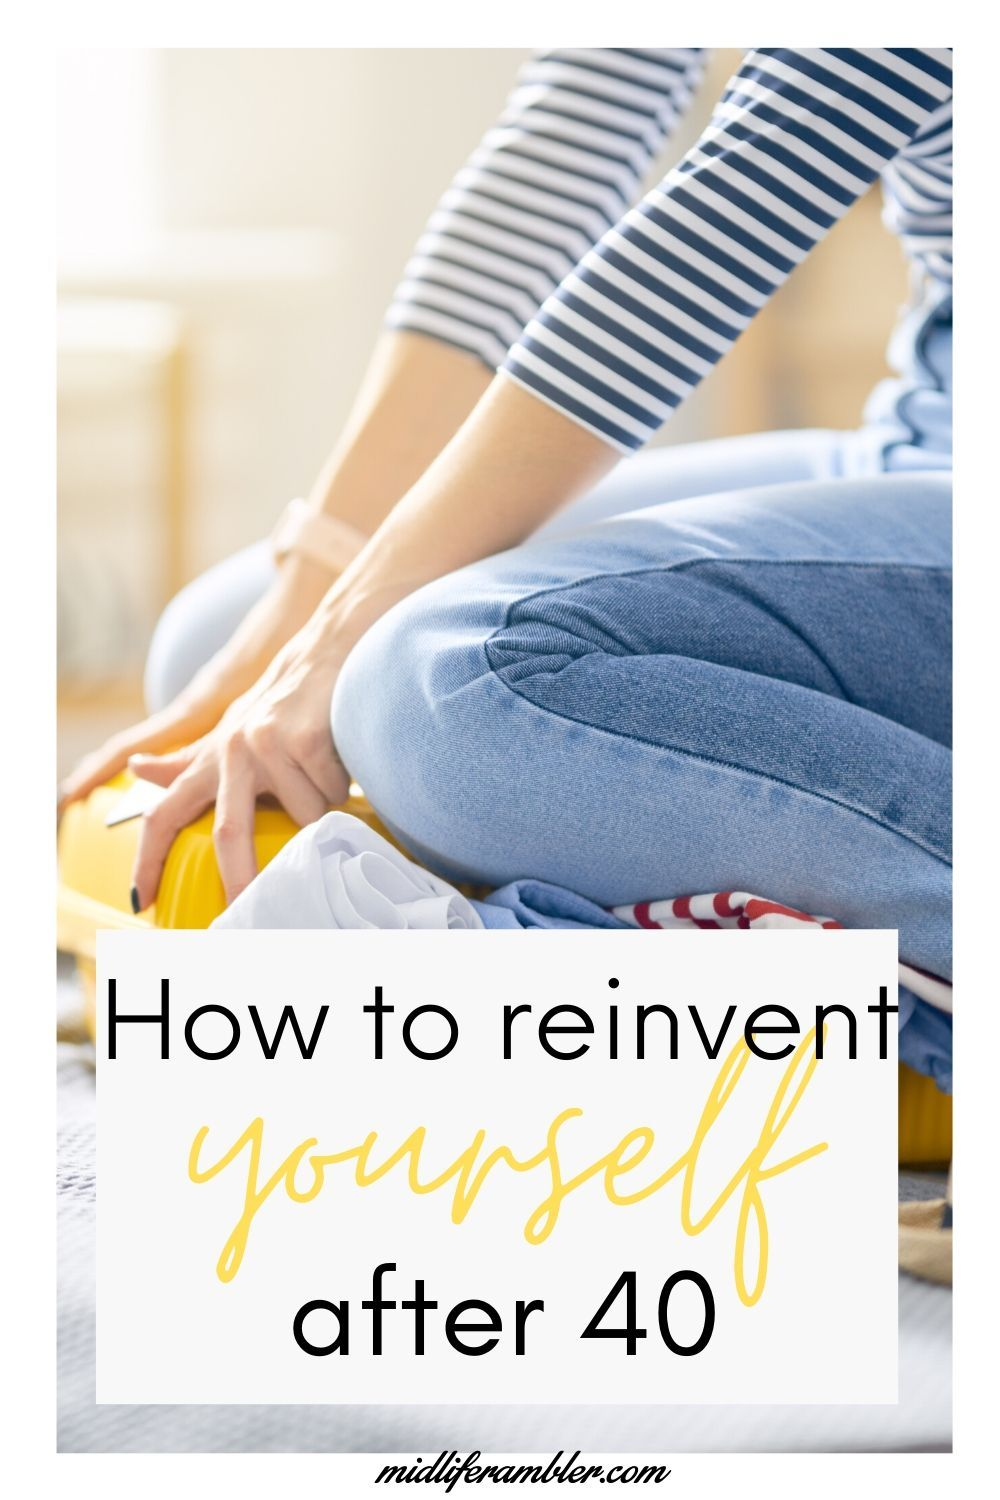 Here's What You Need to Know about How to Reinvent